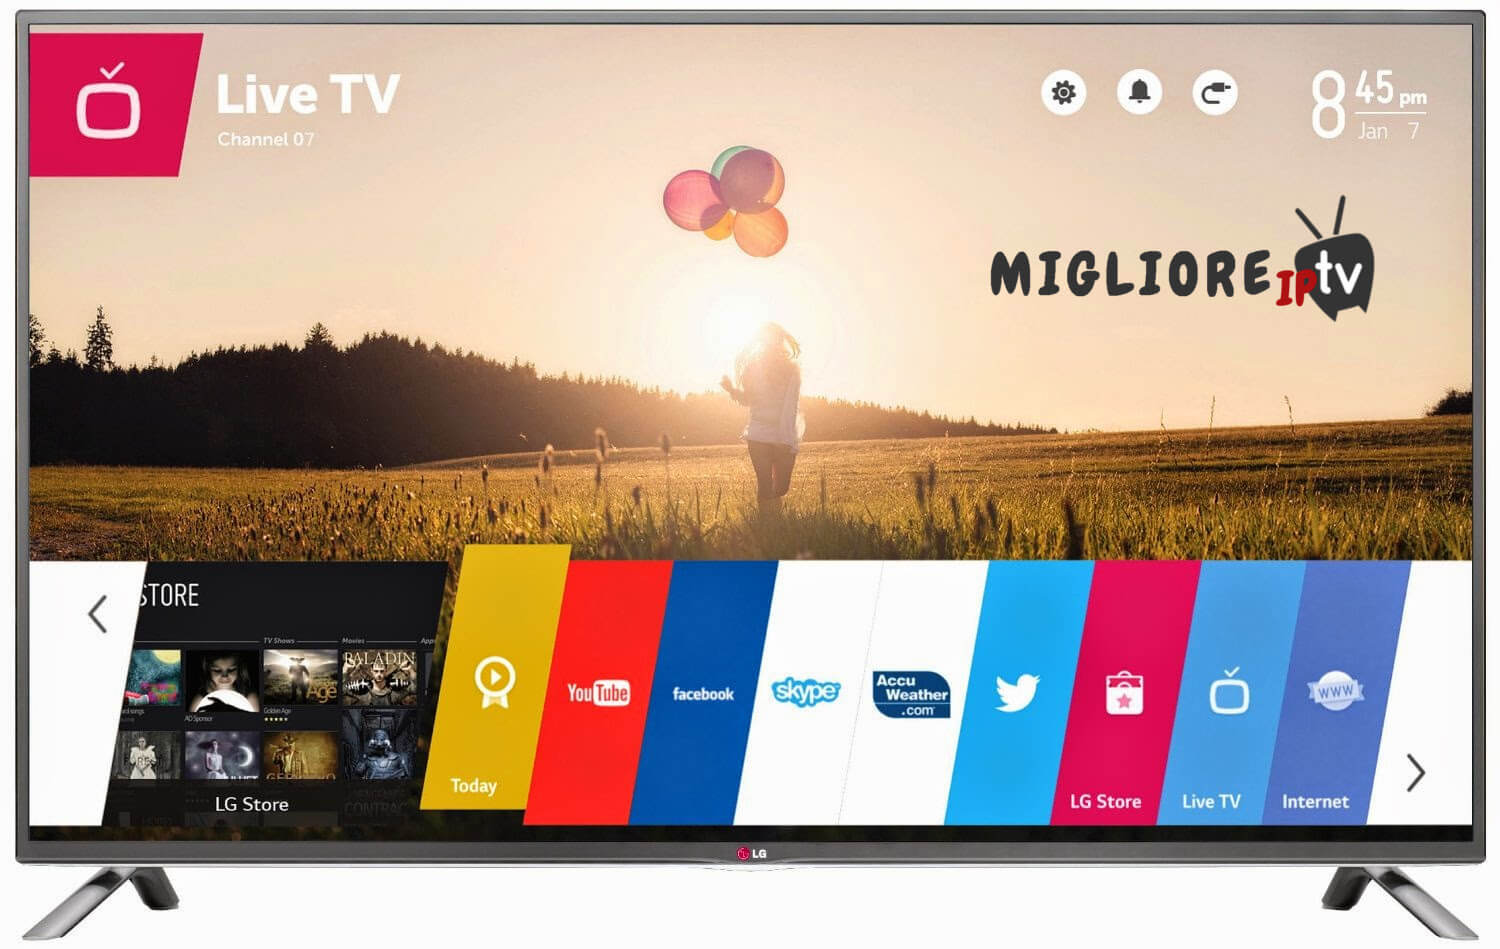 raiplay su smart tv samsung